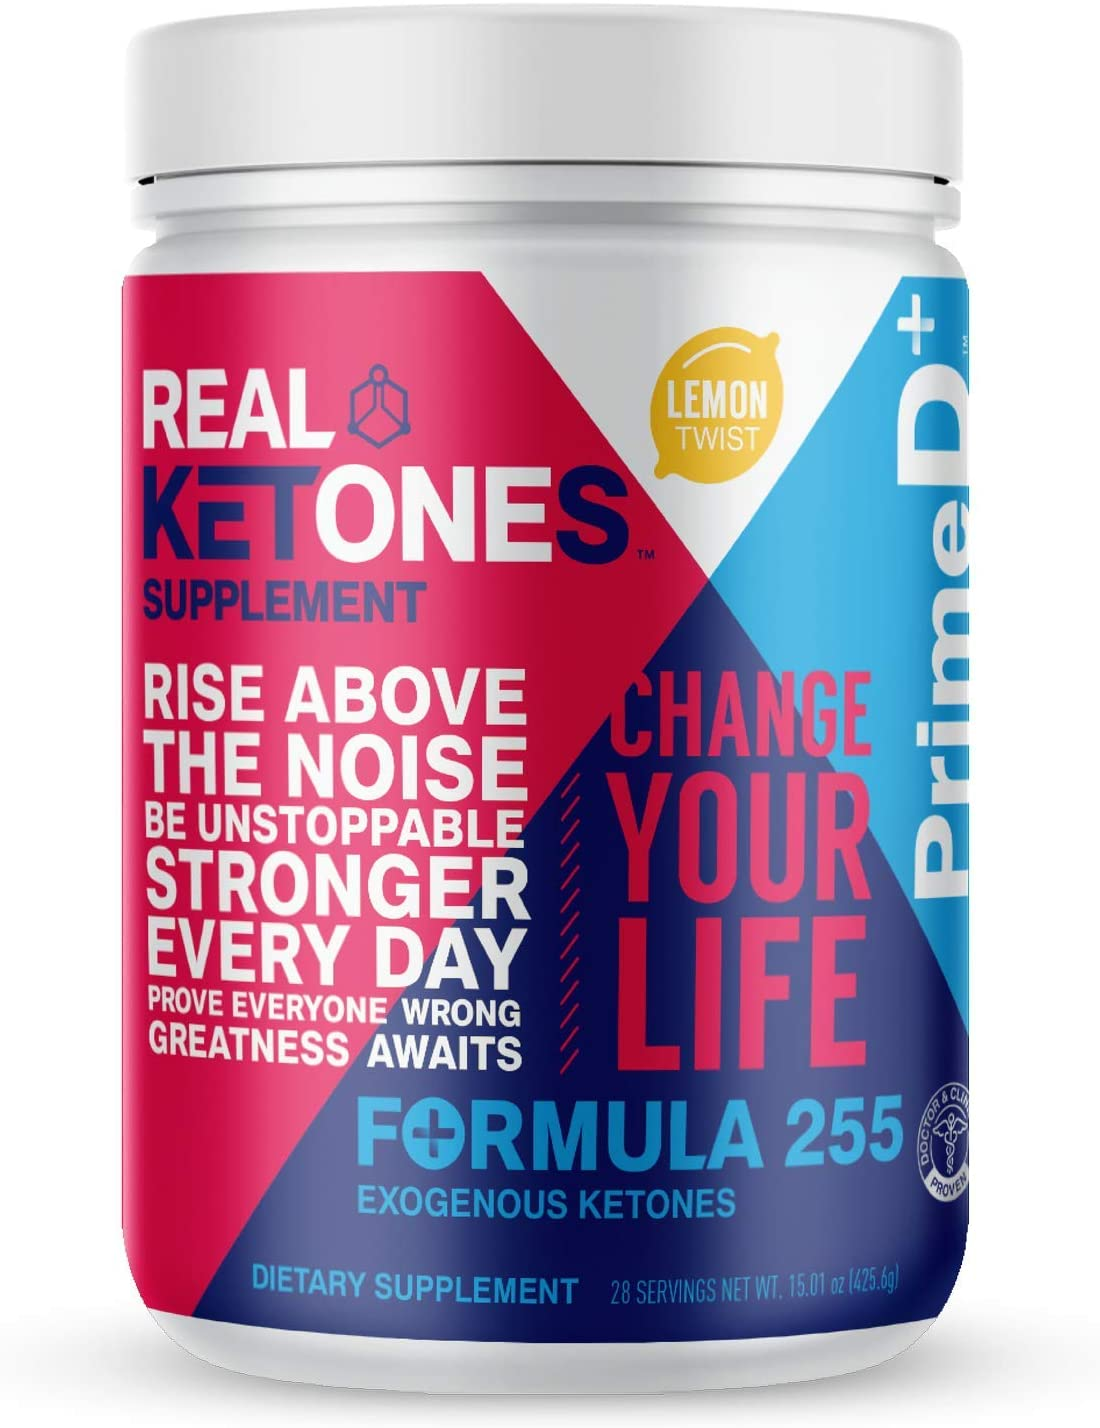 Real Ketones™ Prime D+ Exogenous Keto BHB + MCT Oil- 28 Servings- Drink Mix Powder Supplement with Electrolytes – Lemon Twist- Ketosis in 1 Hour